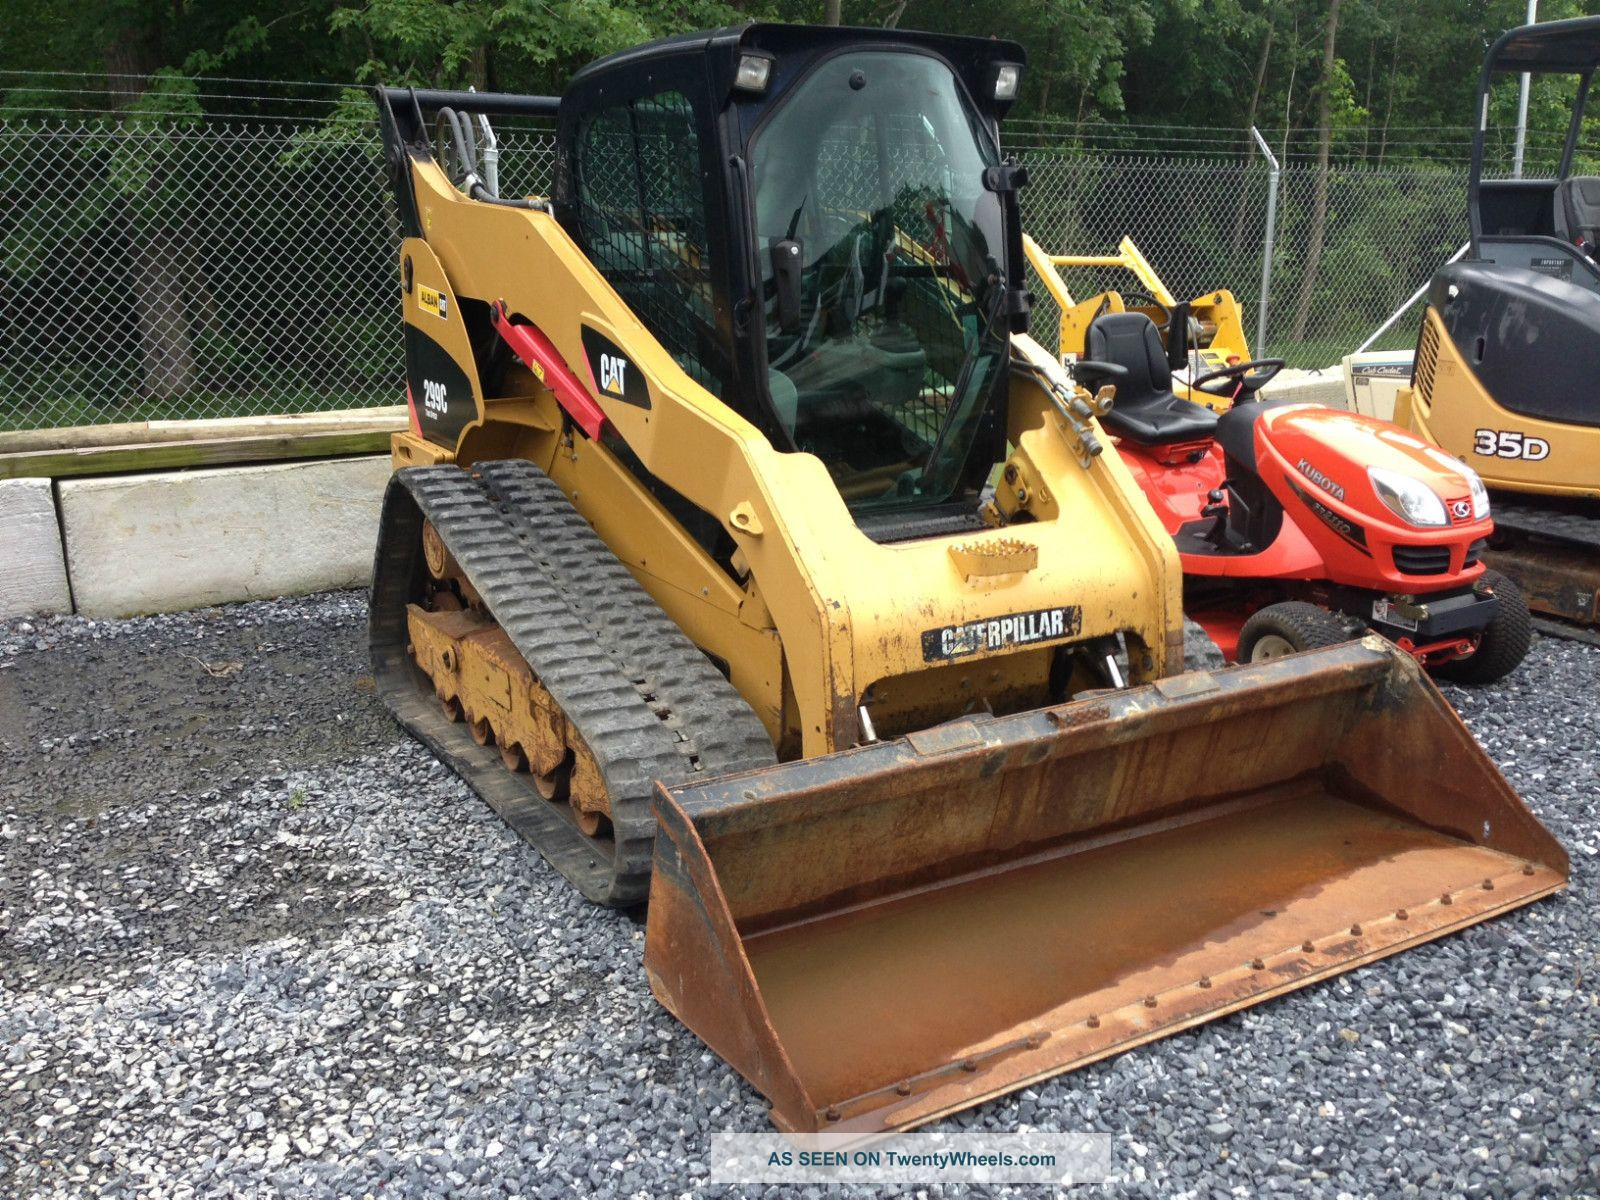 11094 Caterpillar 299c track loader with cab  ac  80  bucket and more